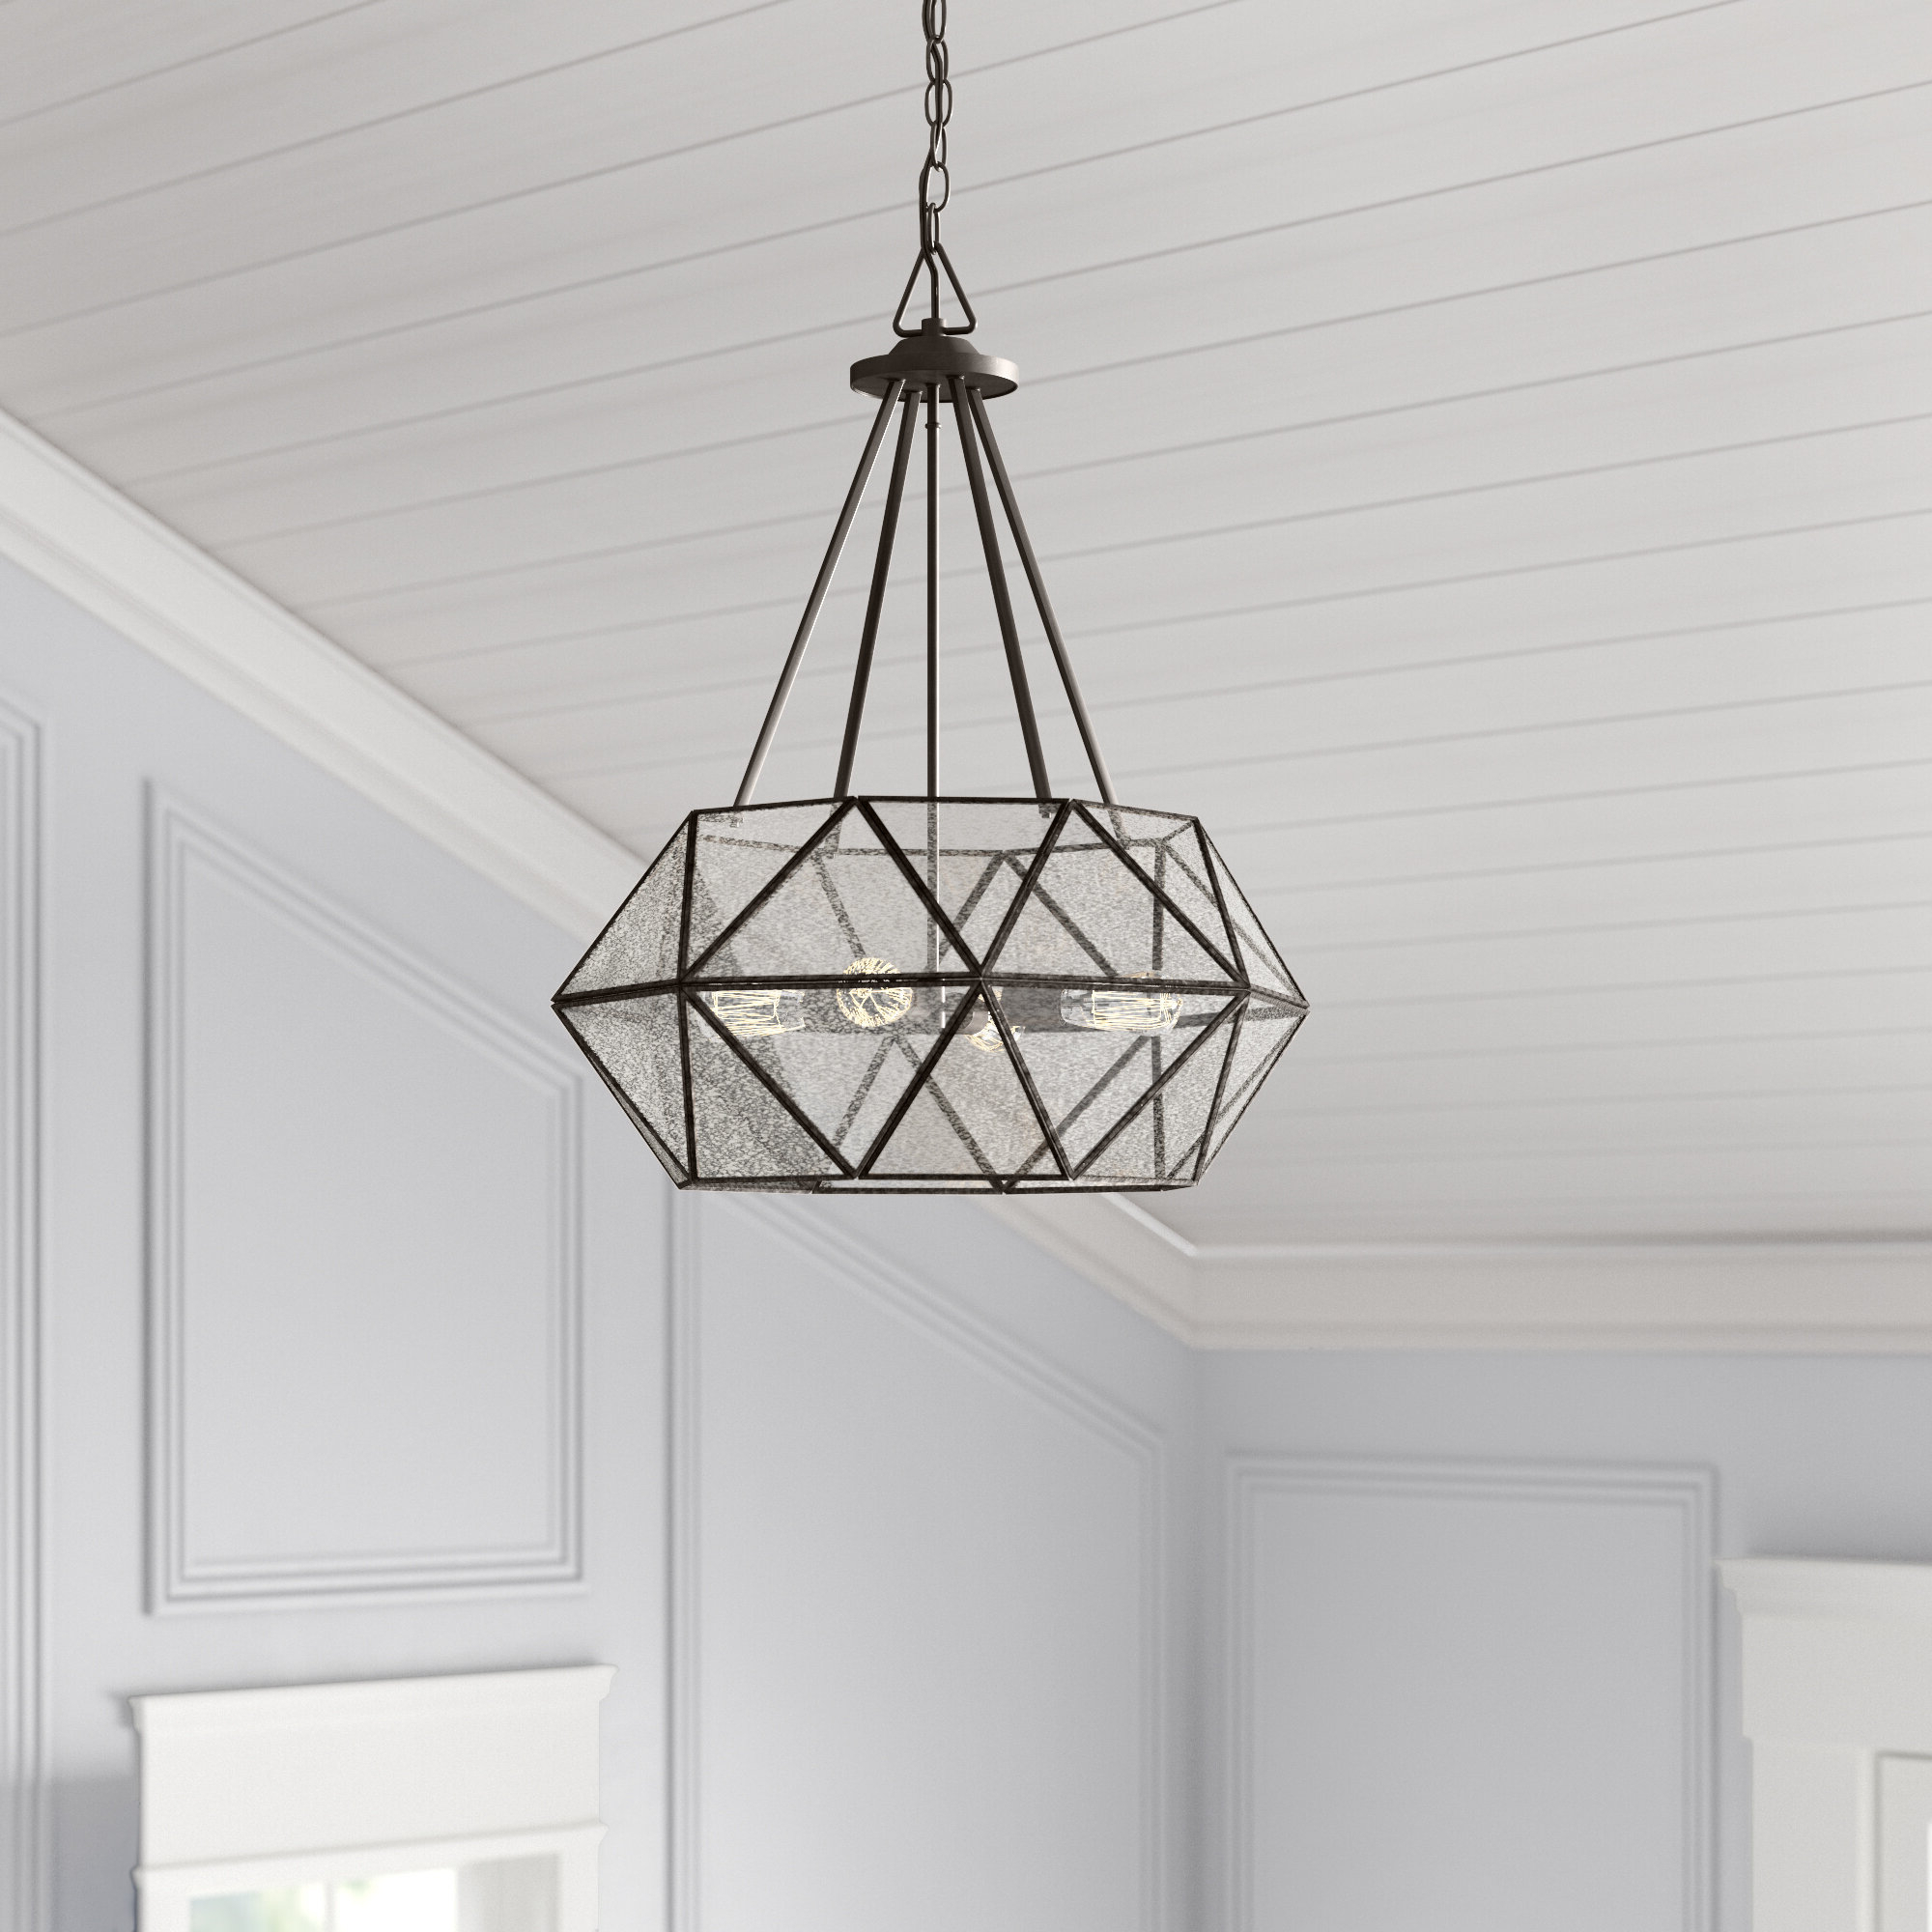 Cavanagh 4 Light Geometric Chandeliers With Well Known Jacey 4 Light Chandelier (View 10 of 25)